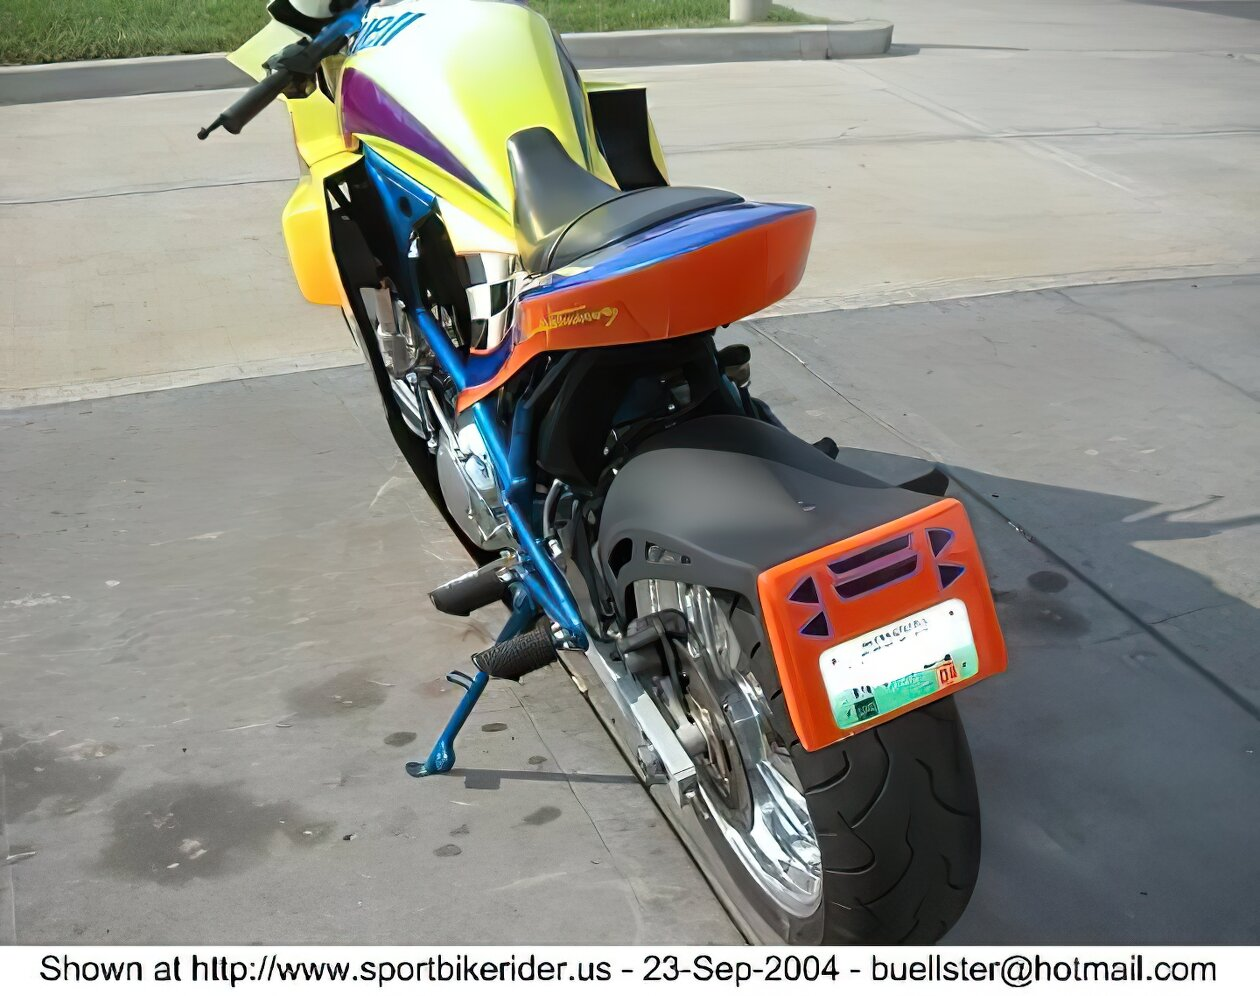 Buell S1/S2/S3 - ID: 63762